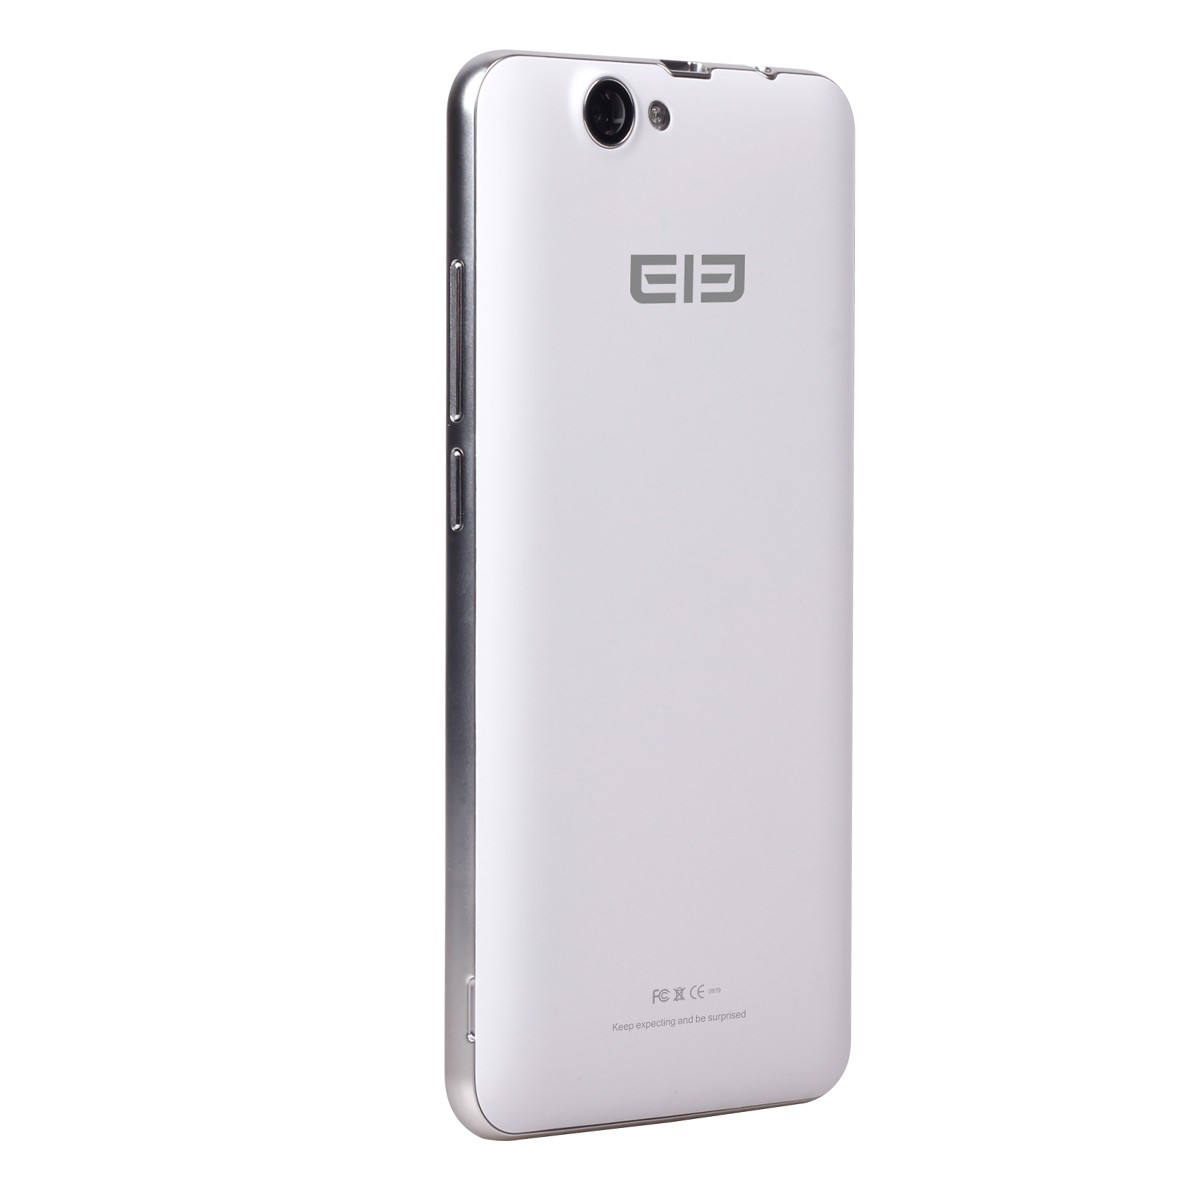 Elephone P5000 Specs Review and Price